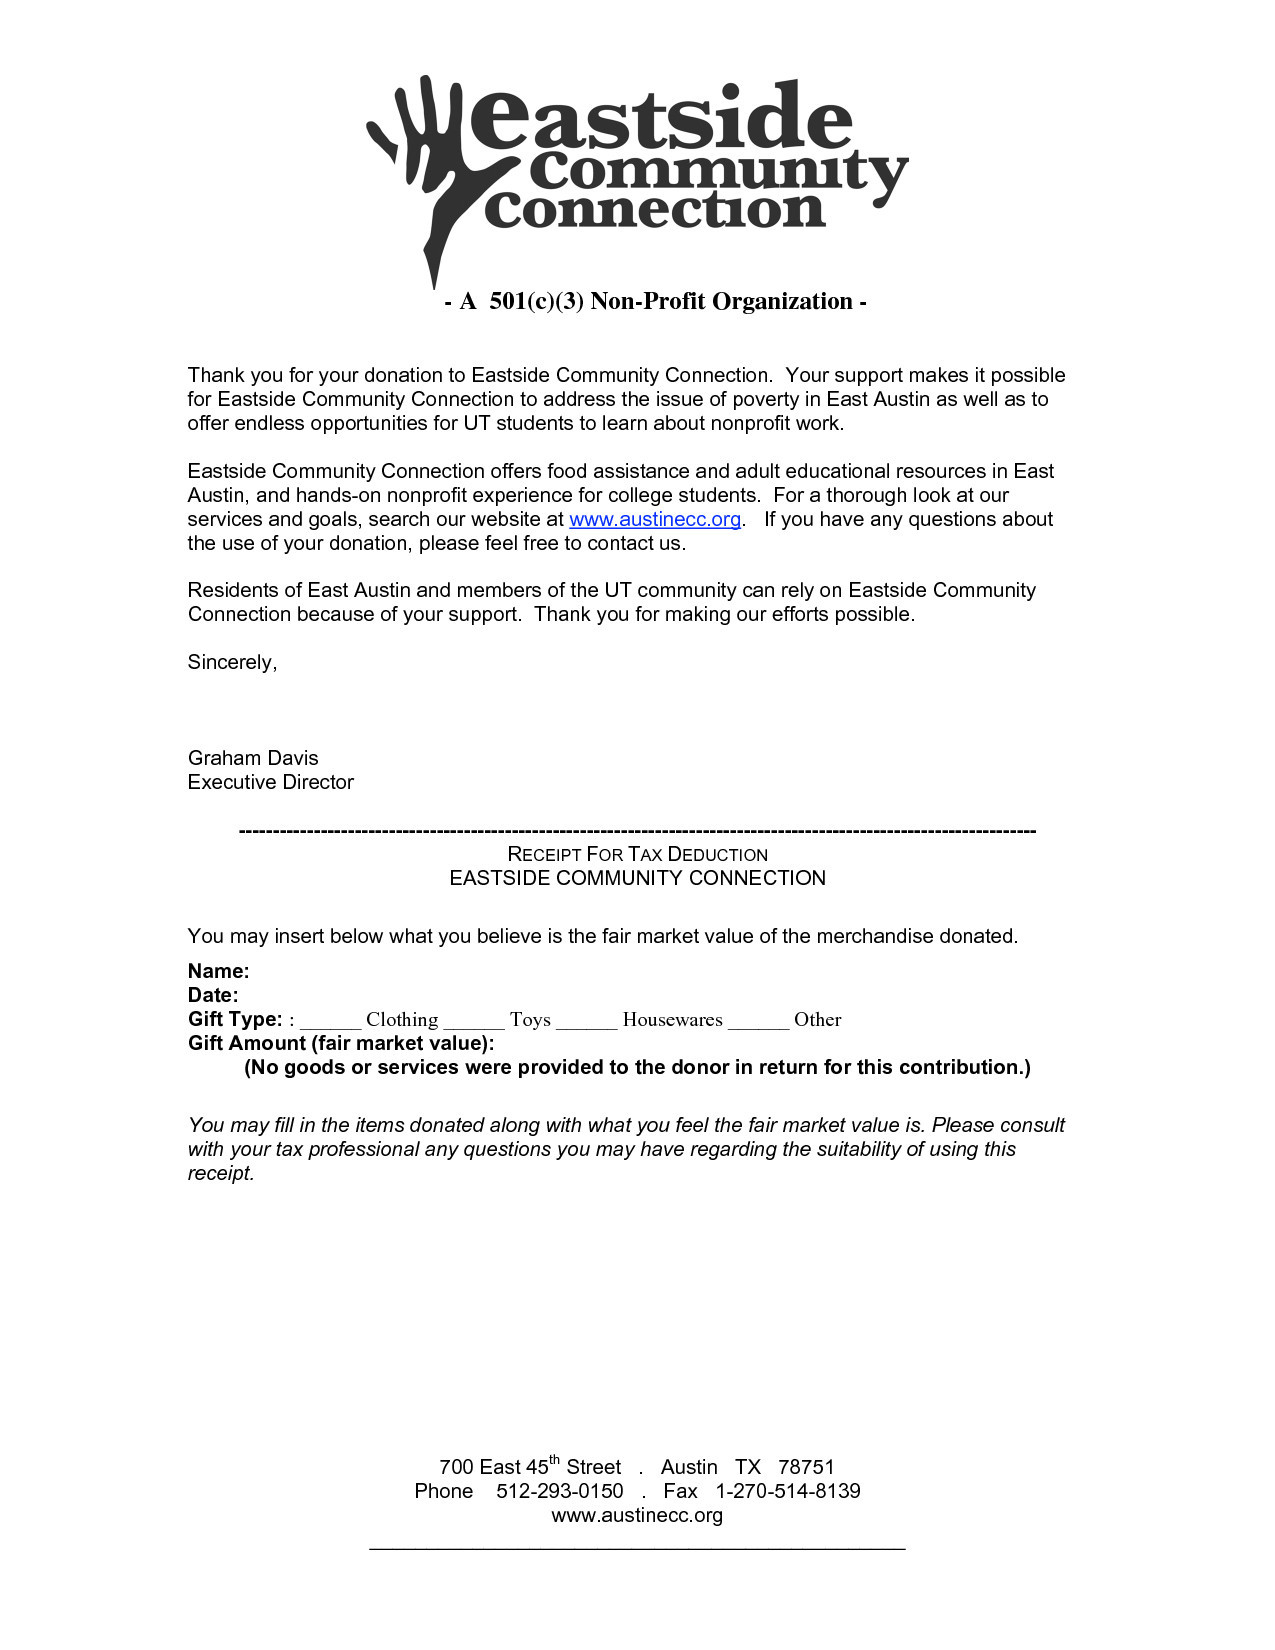 Tax Donation Letter Template - Exceptional Tax Donation Letter Template